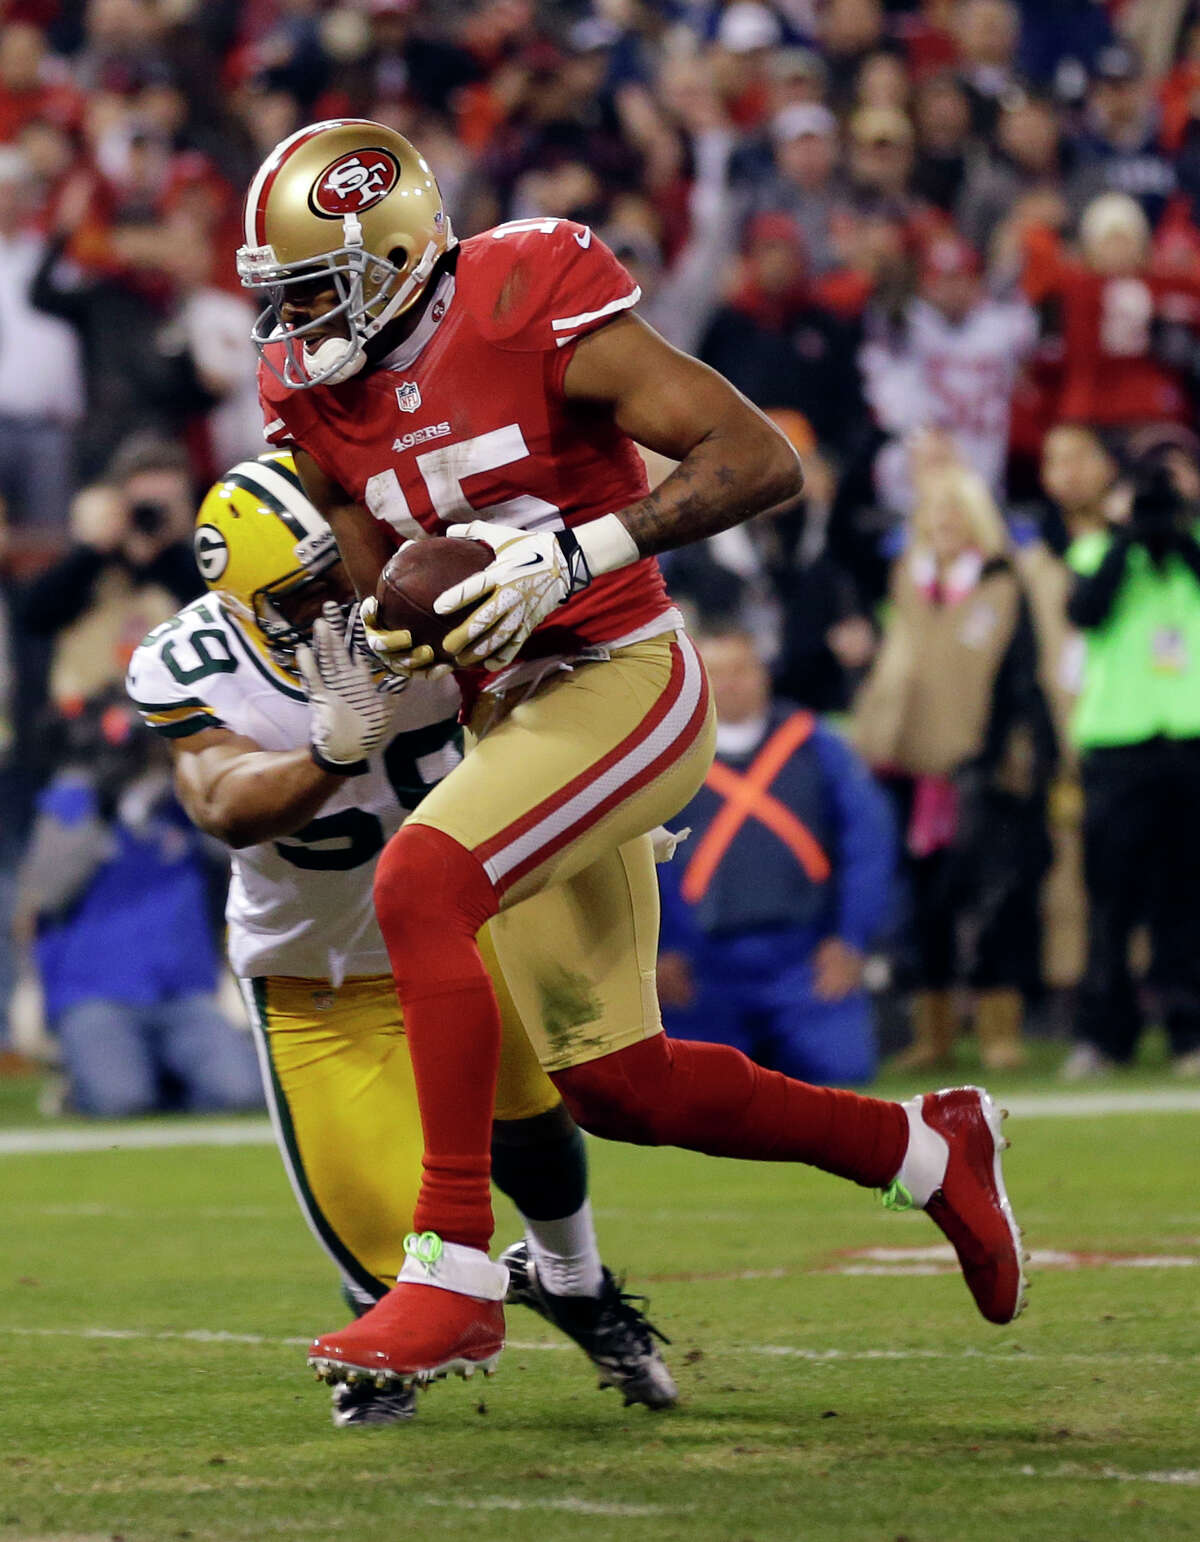 San Francisco 49ers wide receiver Michael Crabtree (15) scores on a 12-yard touchdown reception past Green Bay Packers inside linebacker Brad Jones (59) during the second quarter of an NFC divisional playoff NFL football game in San Francisco, Saturday, Jan. 12, 2013. (AP Photo/Marcio Jose Sanchez)